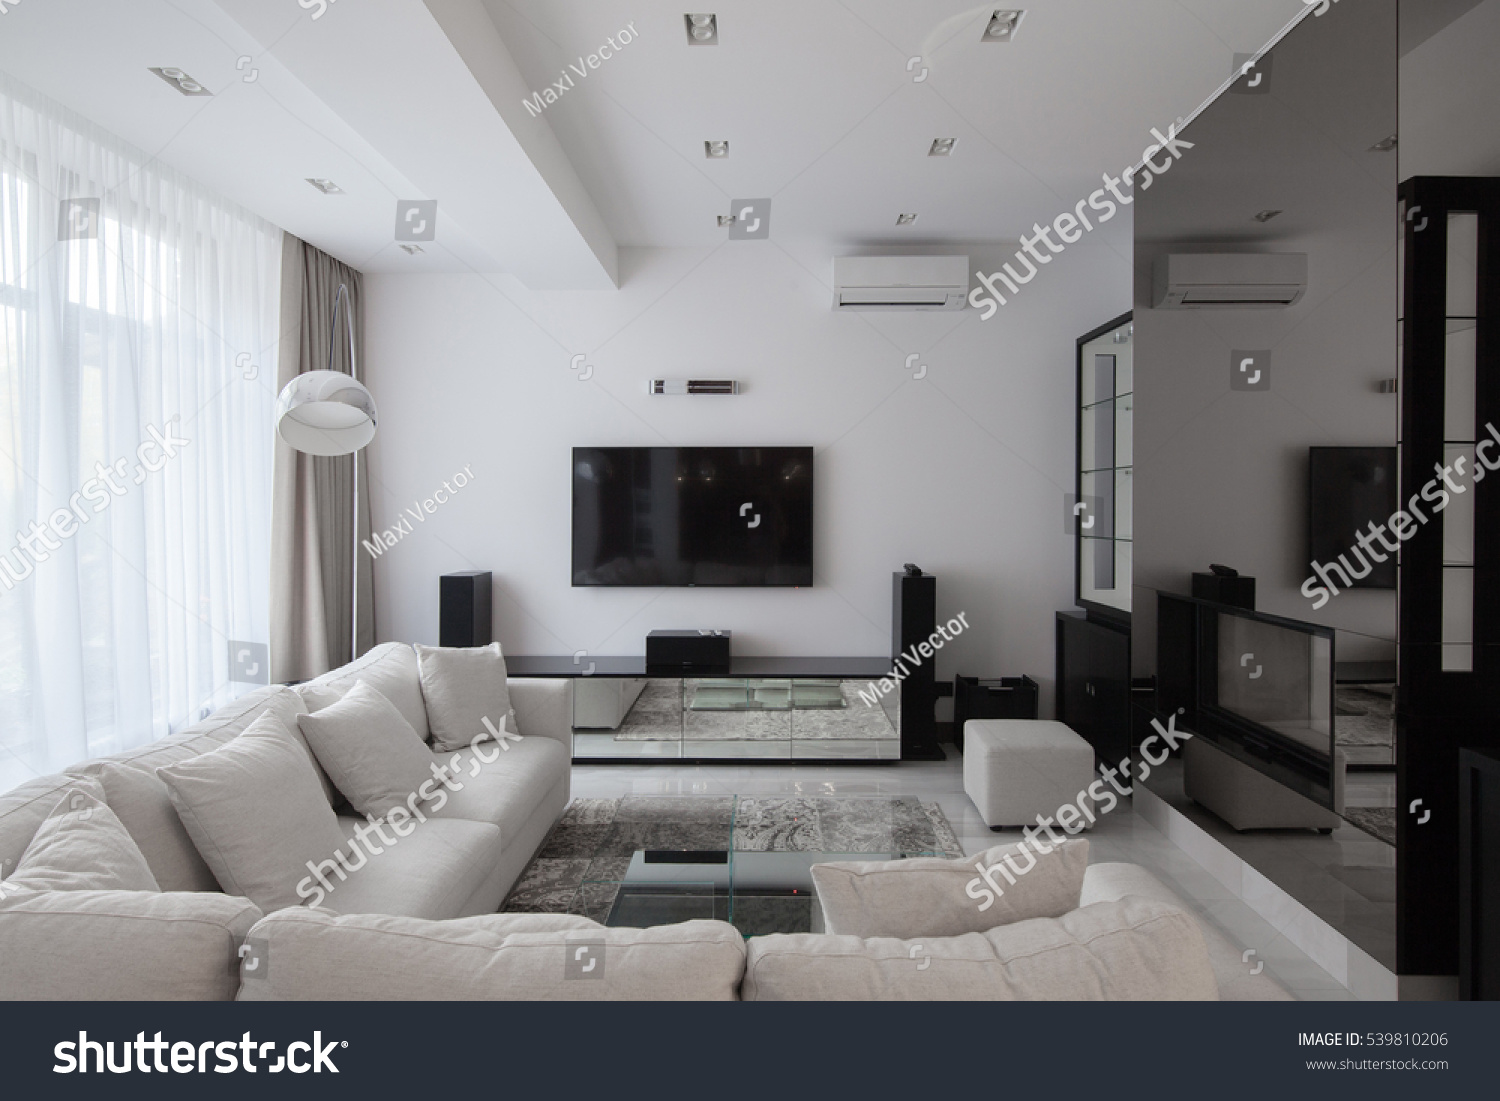 White modern apartments with air conditioning and TV and long-transparent curtains #539810206